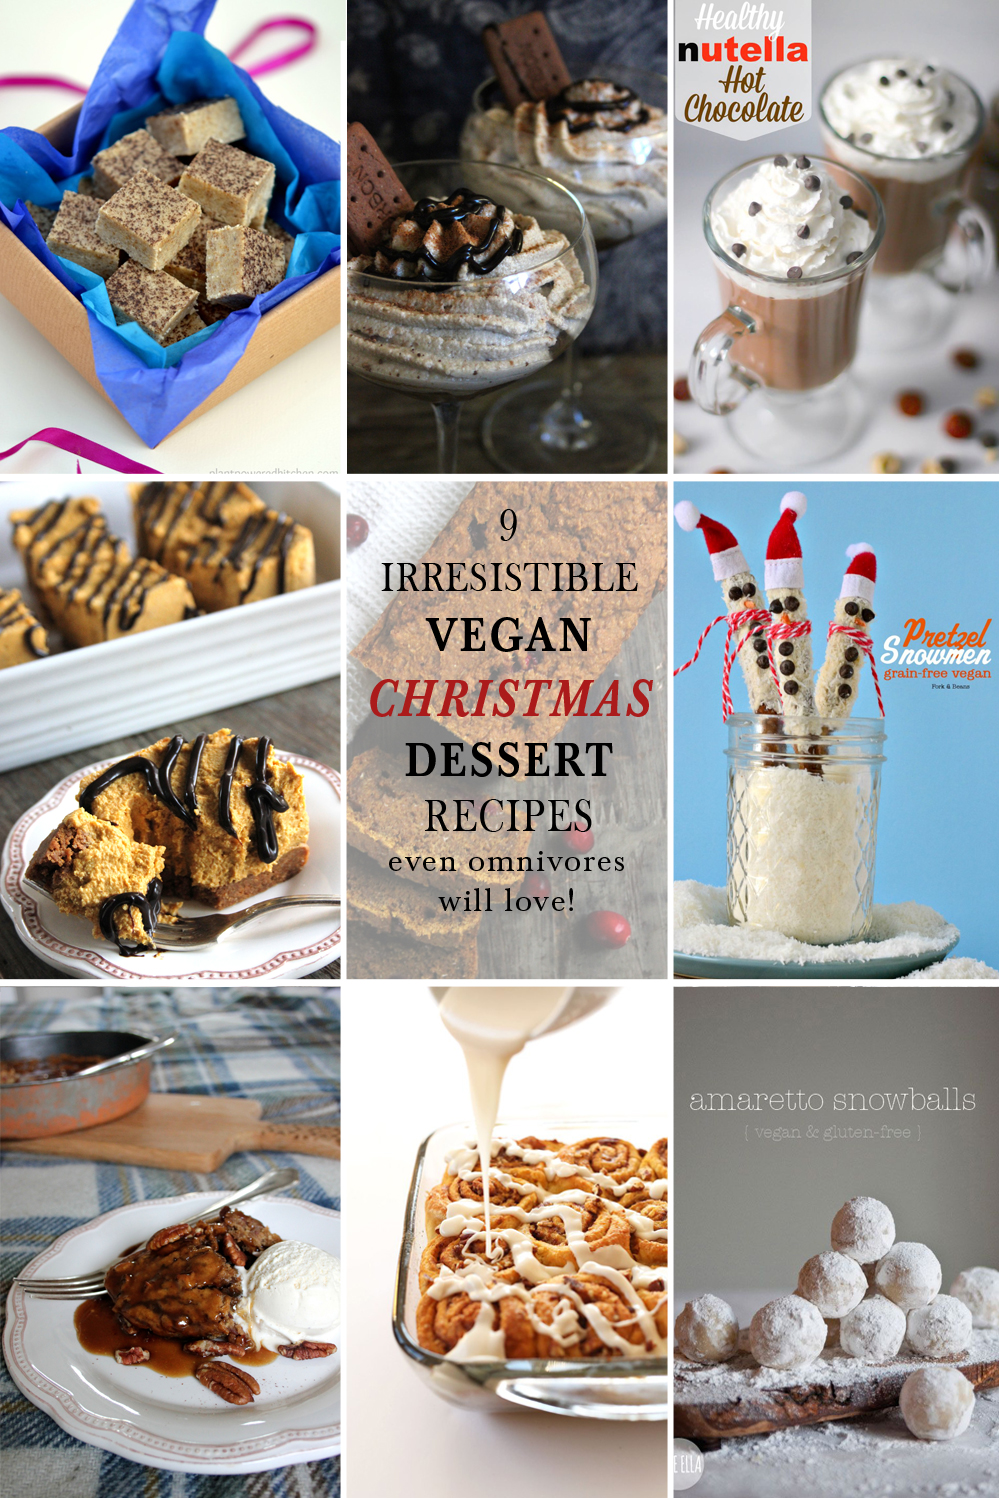 Christmas Desserts Recipes.9 Irresistible Vegan Christmas Desserts Even Omnivores Will